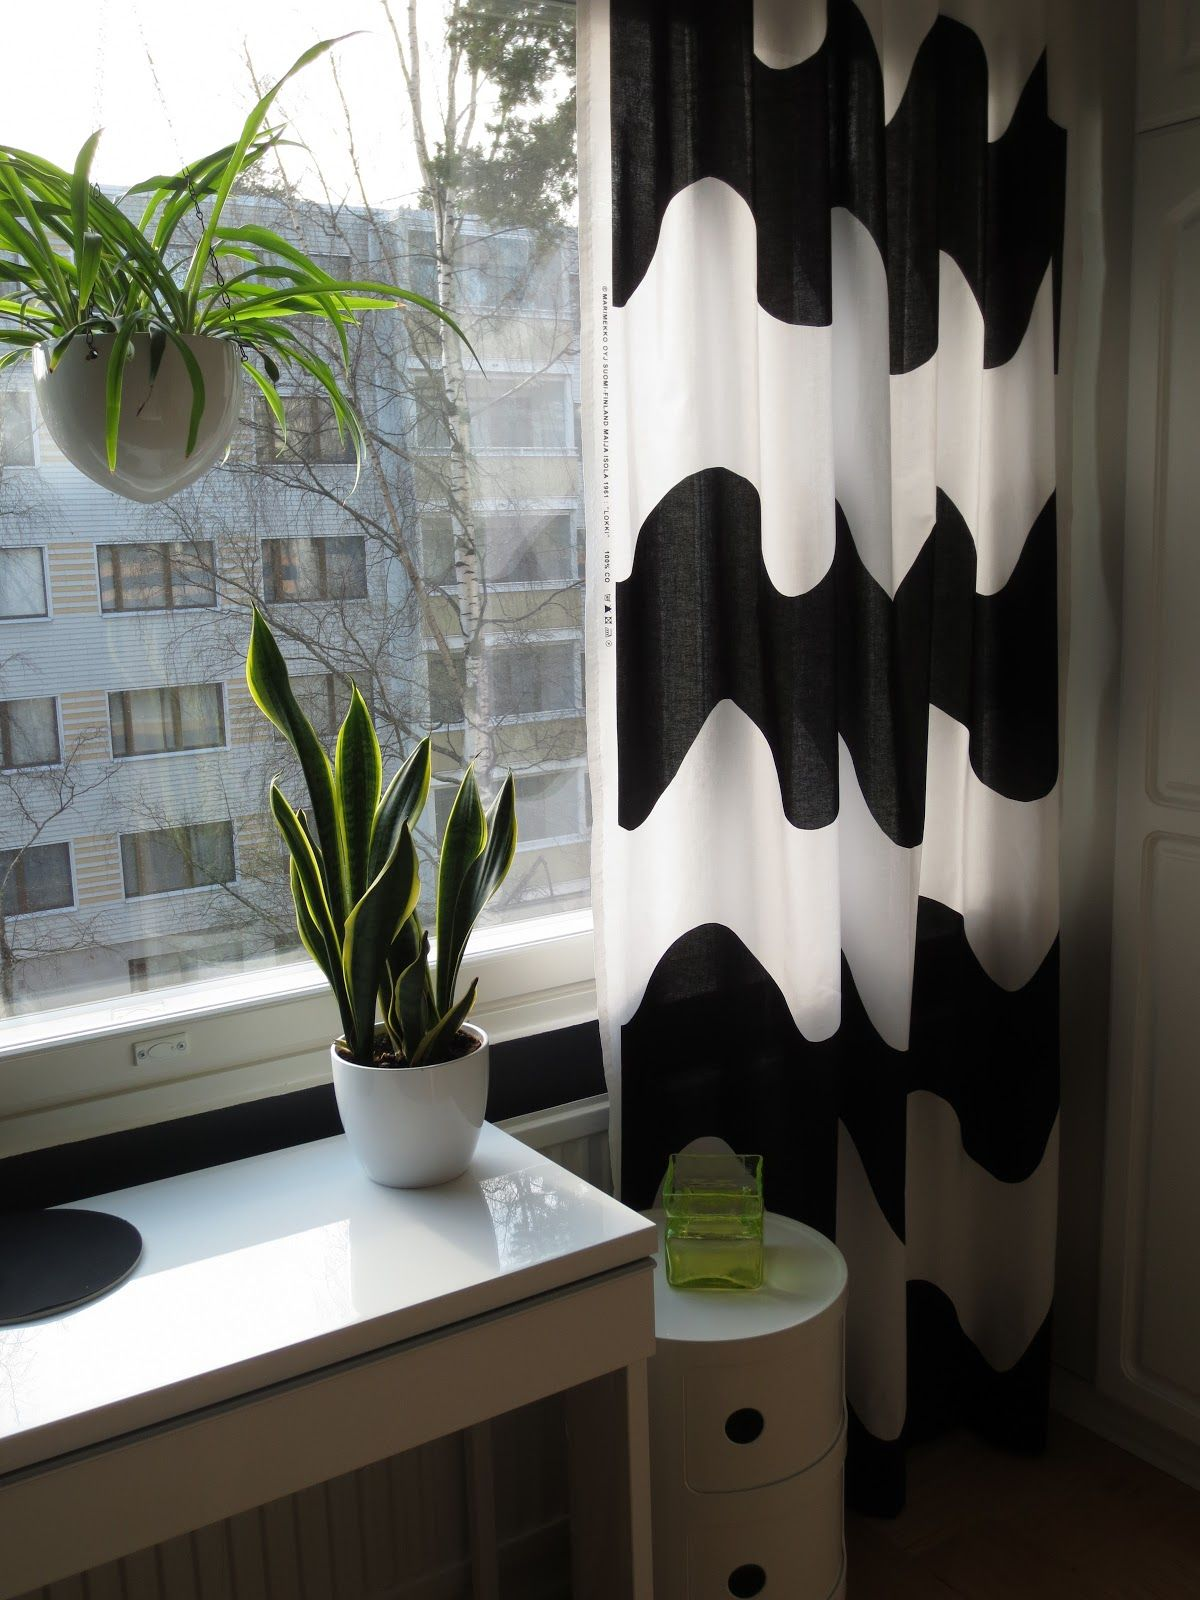 luxurious crate shower barrel bathtub unique curtains tips marimekko of collection inspirational curtain and colorful home